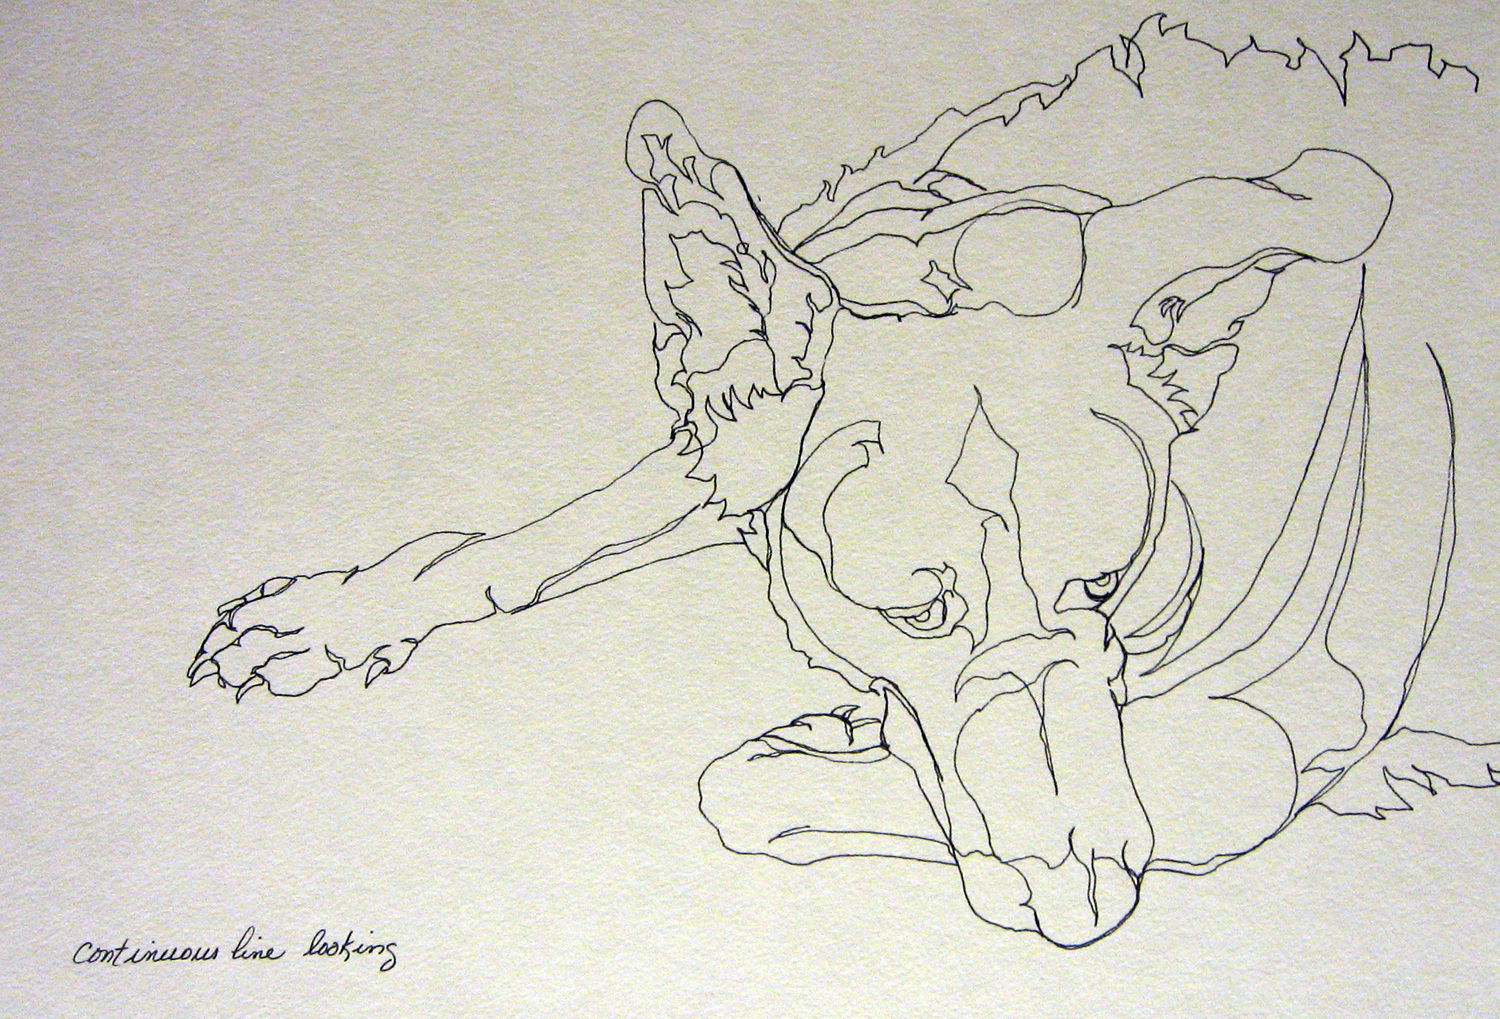 Continuous Line Drawing Famous Artists : Picasso contour drawing at getdrawings free for personal use